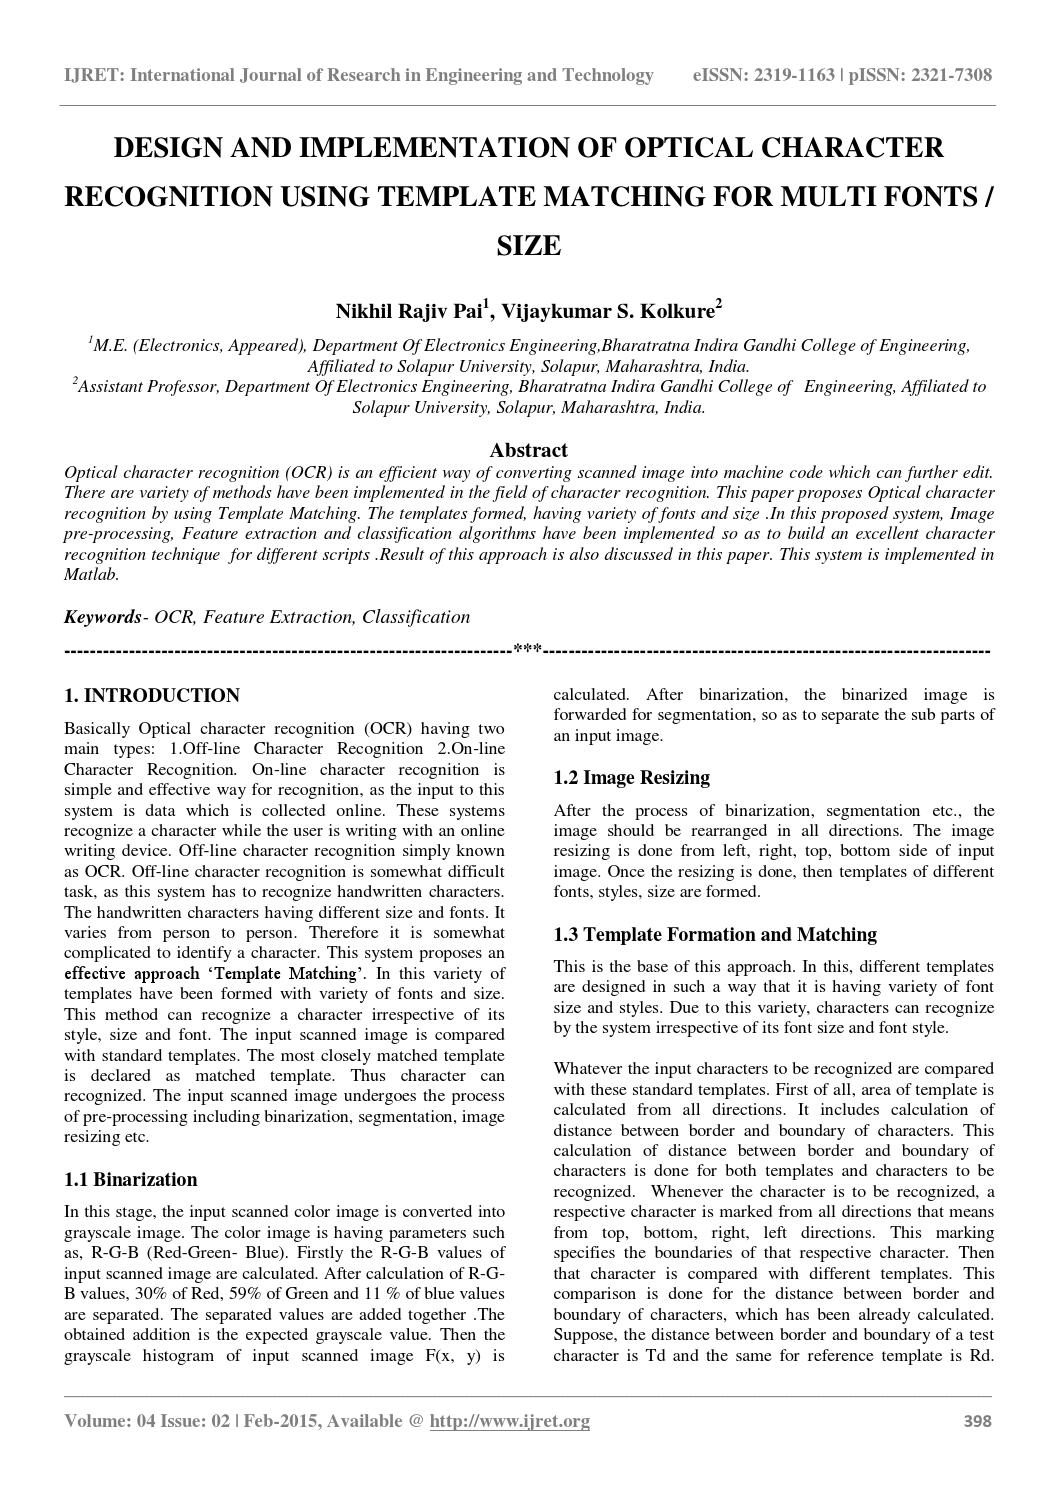 Design and implementation of optical character recognition